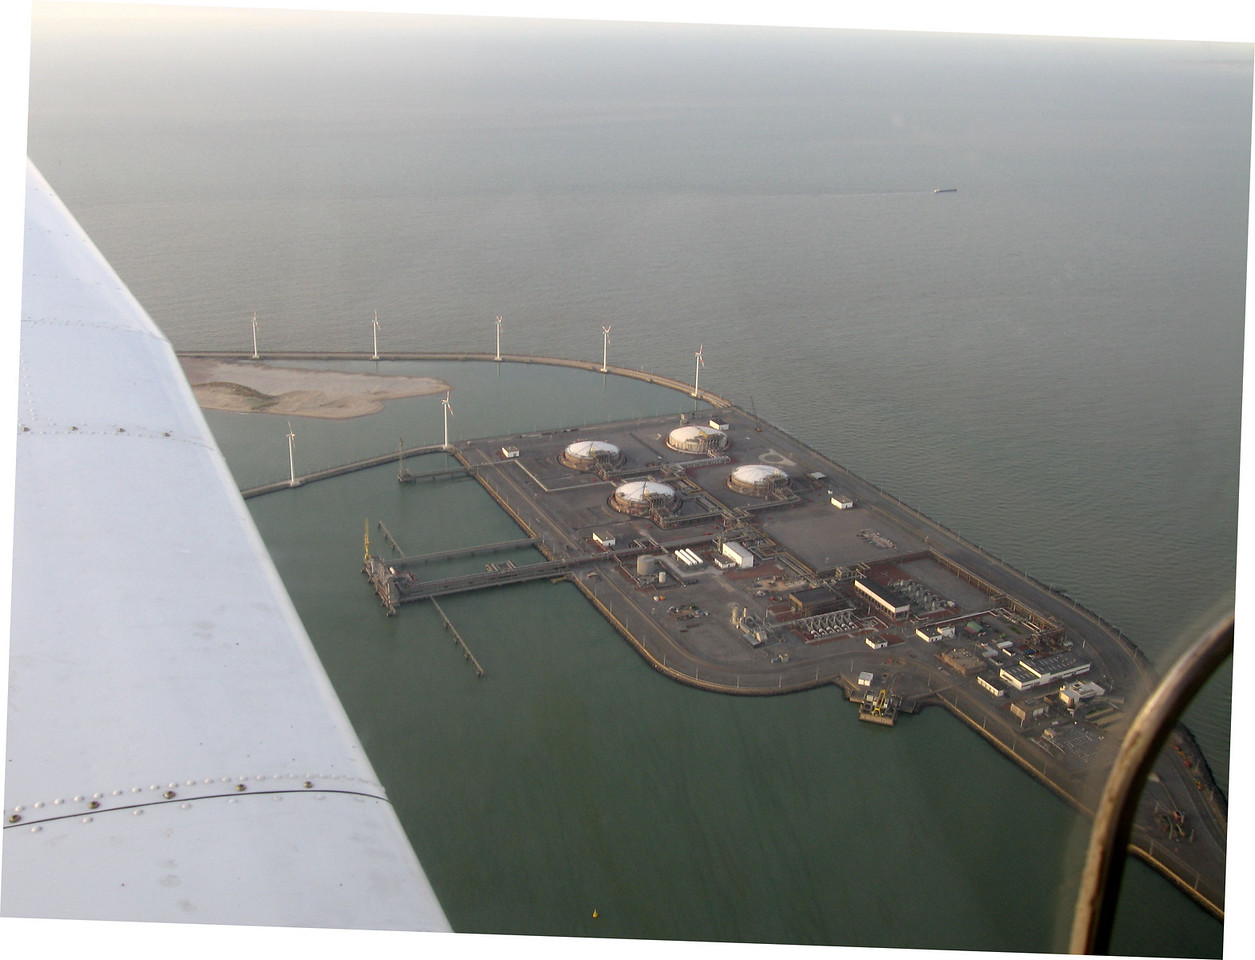 Zeebrugge gas terminal. Not marked in the AIP that it is forbidden, but I don't fly over it to be sure.